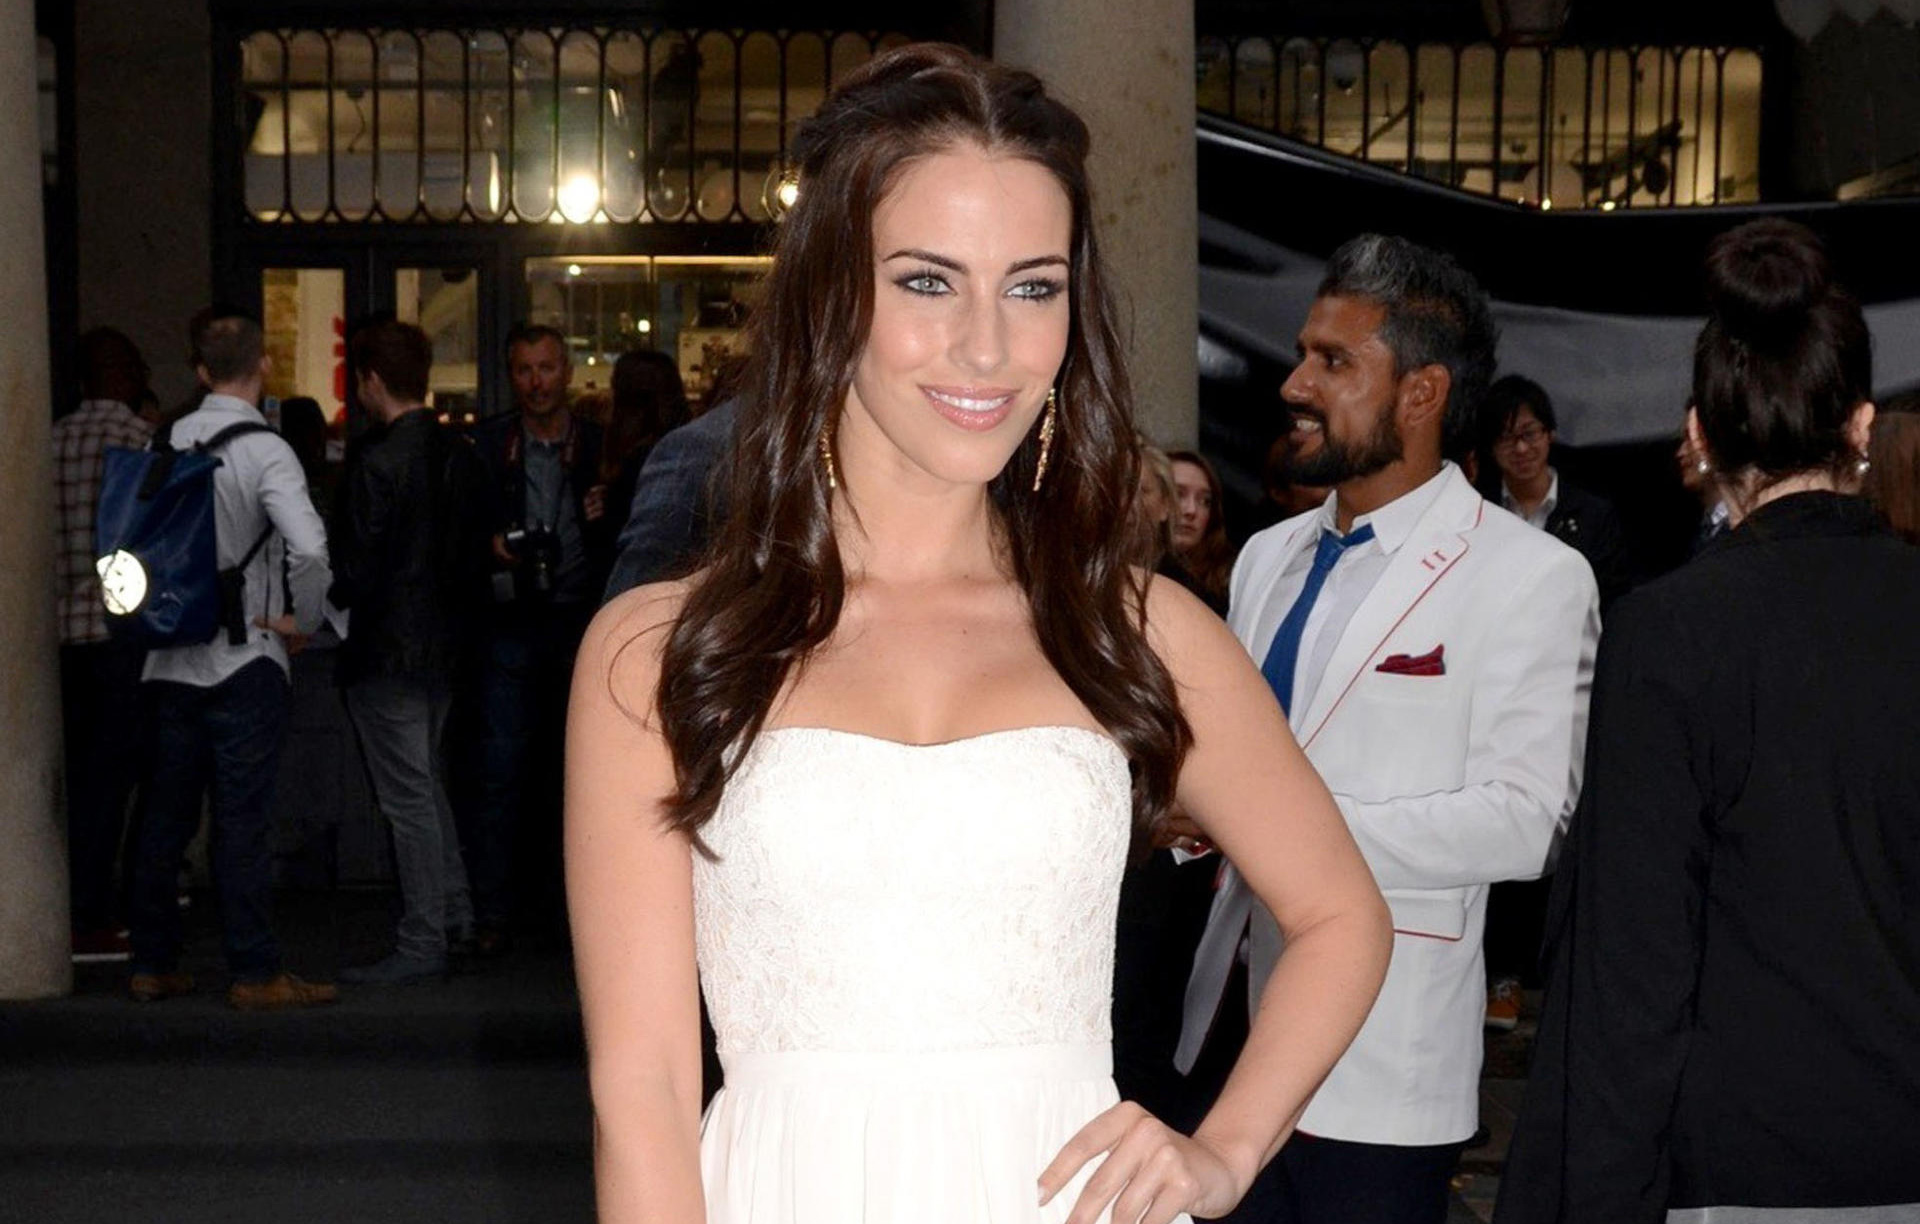 jessica-lowndes-casio-london